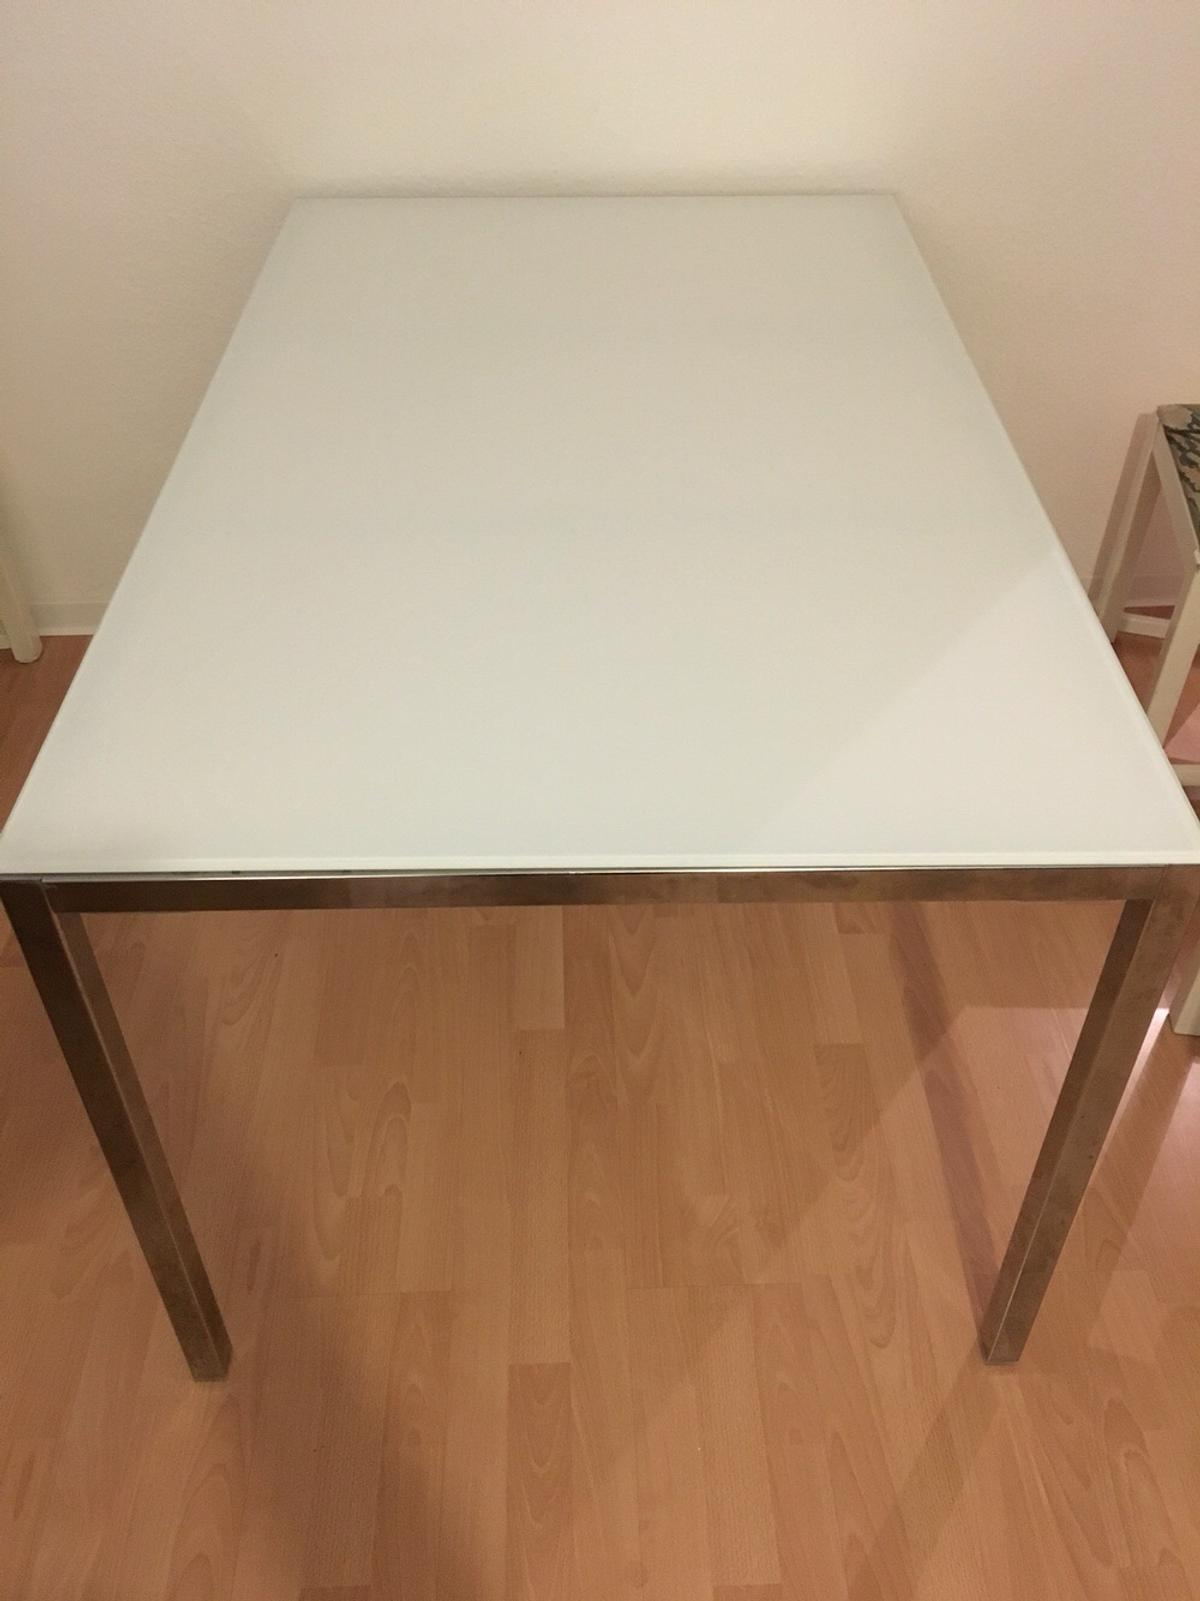 Ikea Tisch Torsby In 30629 Hannover For 65 00 For Sale Shpock